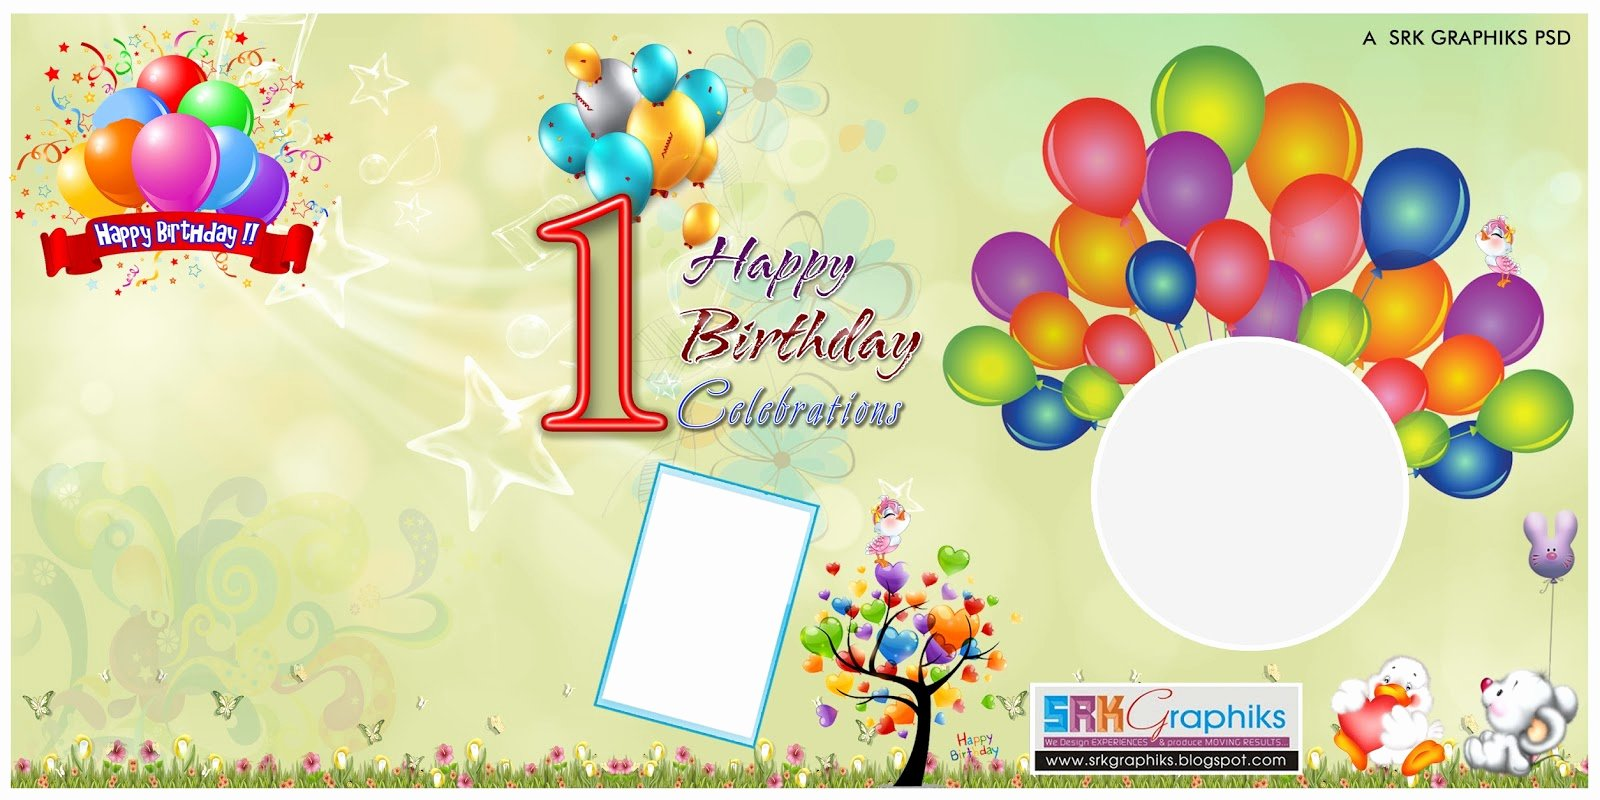 Birthday Invitation Template Photoshop Inspirational Birthday Invitation Templates Free Download